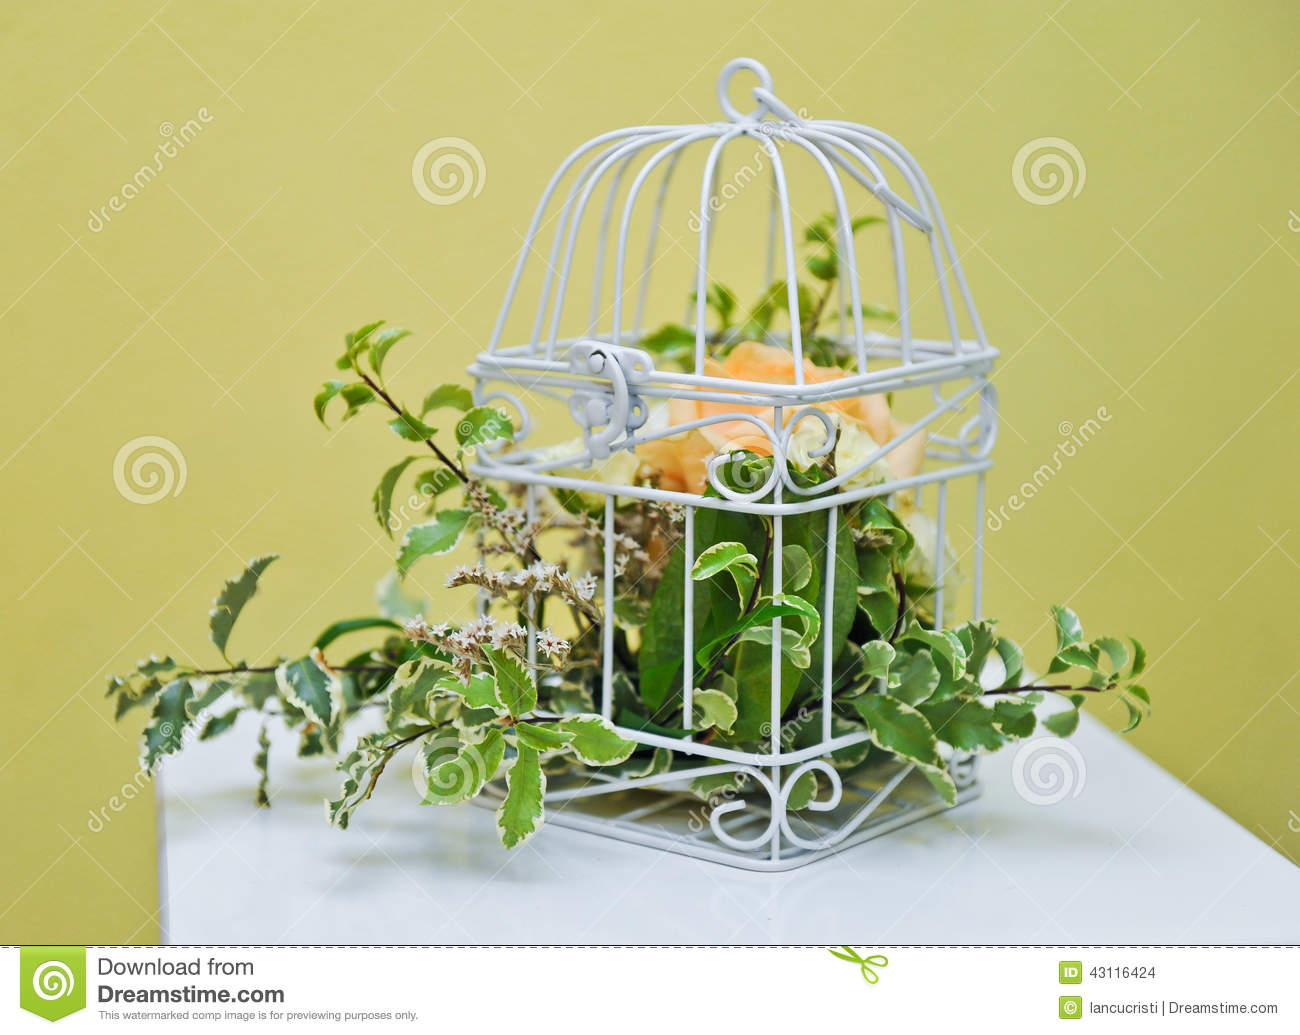 Decoration With Green Plant In A Bird Cage Stock Photo ...